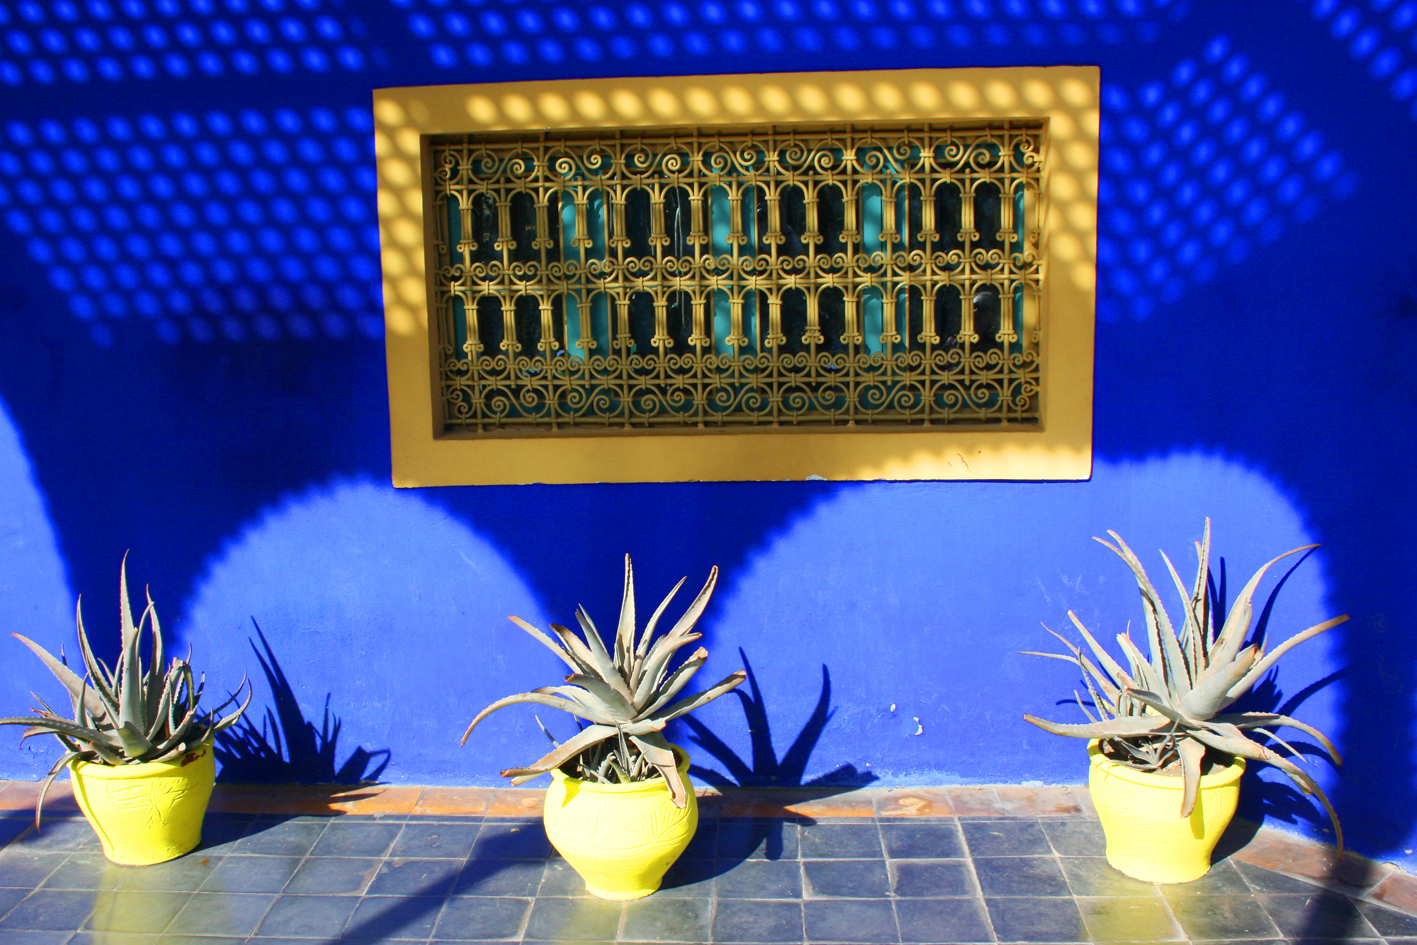 maj_blue_wall_yellow_pots